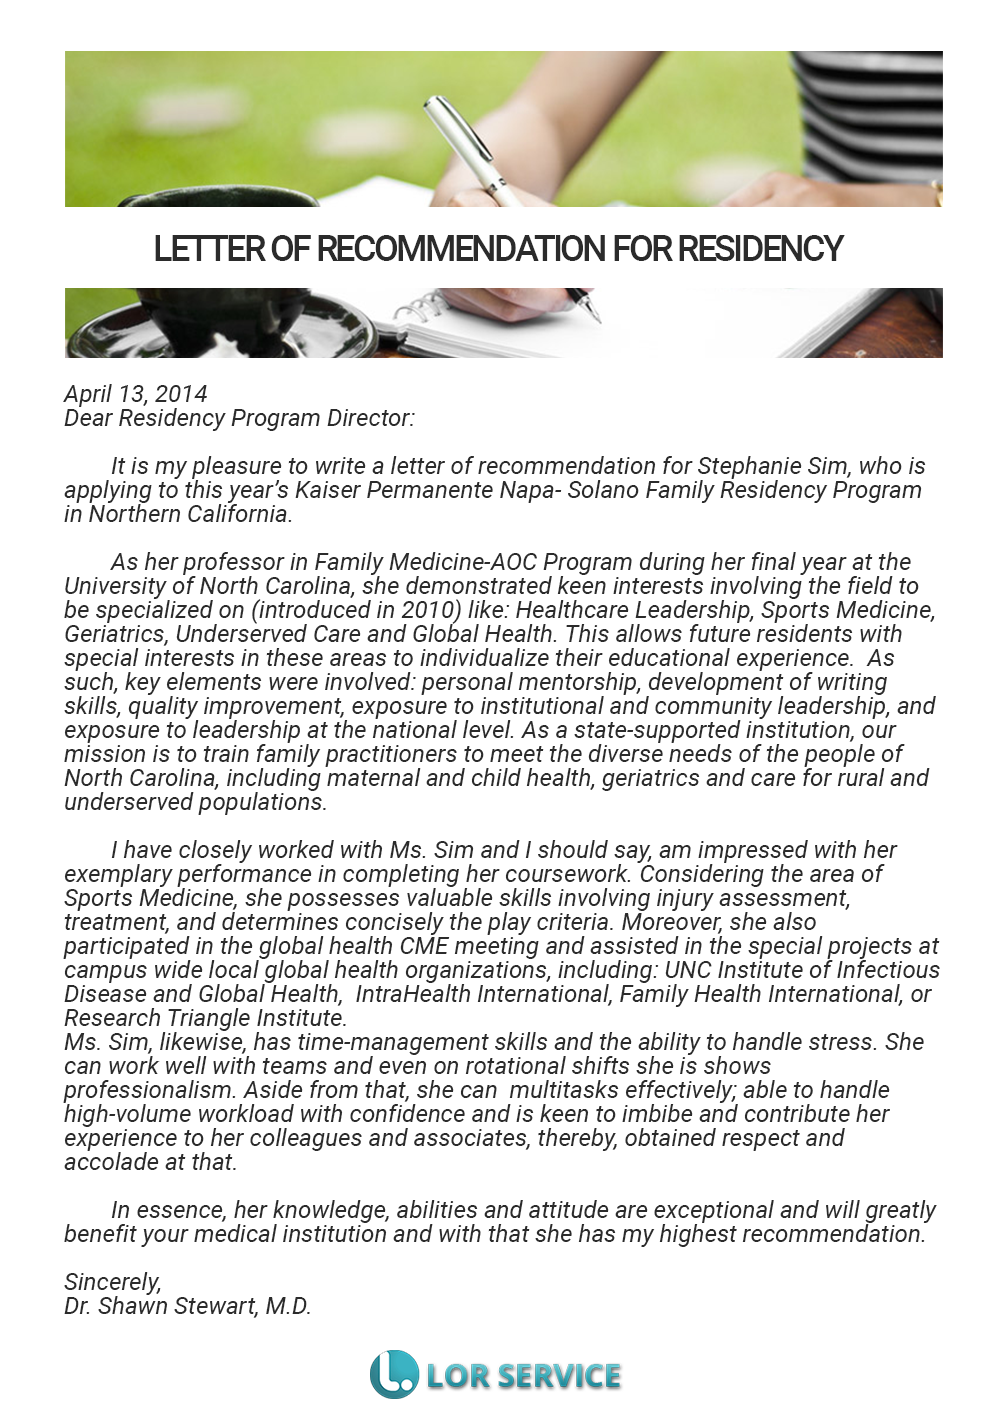 How to write letter of recommendation for residency sample residency letter of recommendation spiritdancerdesigns